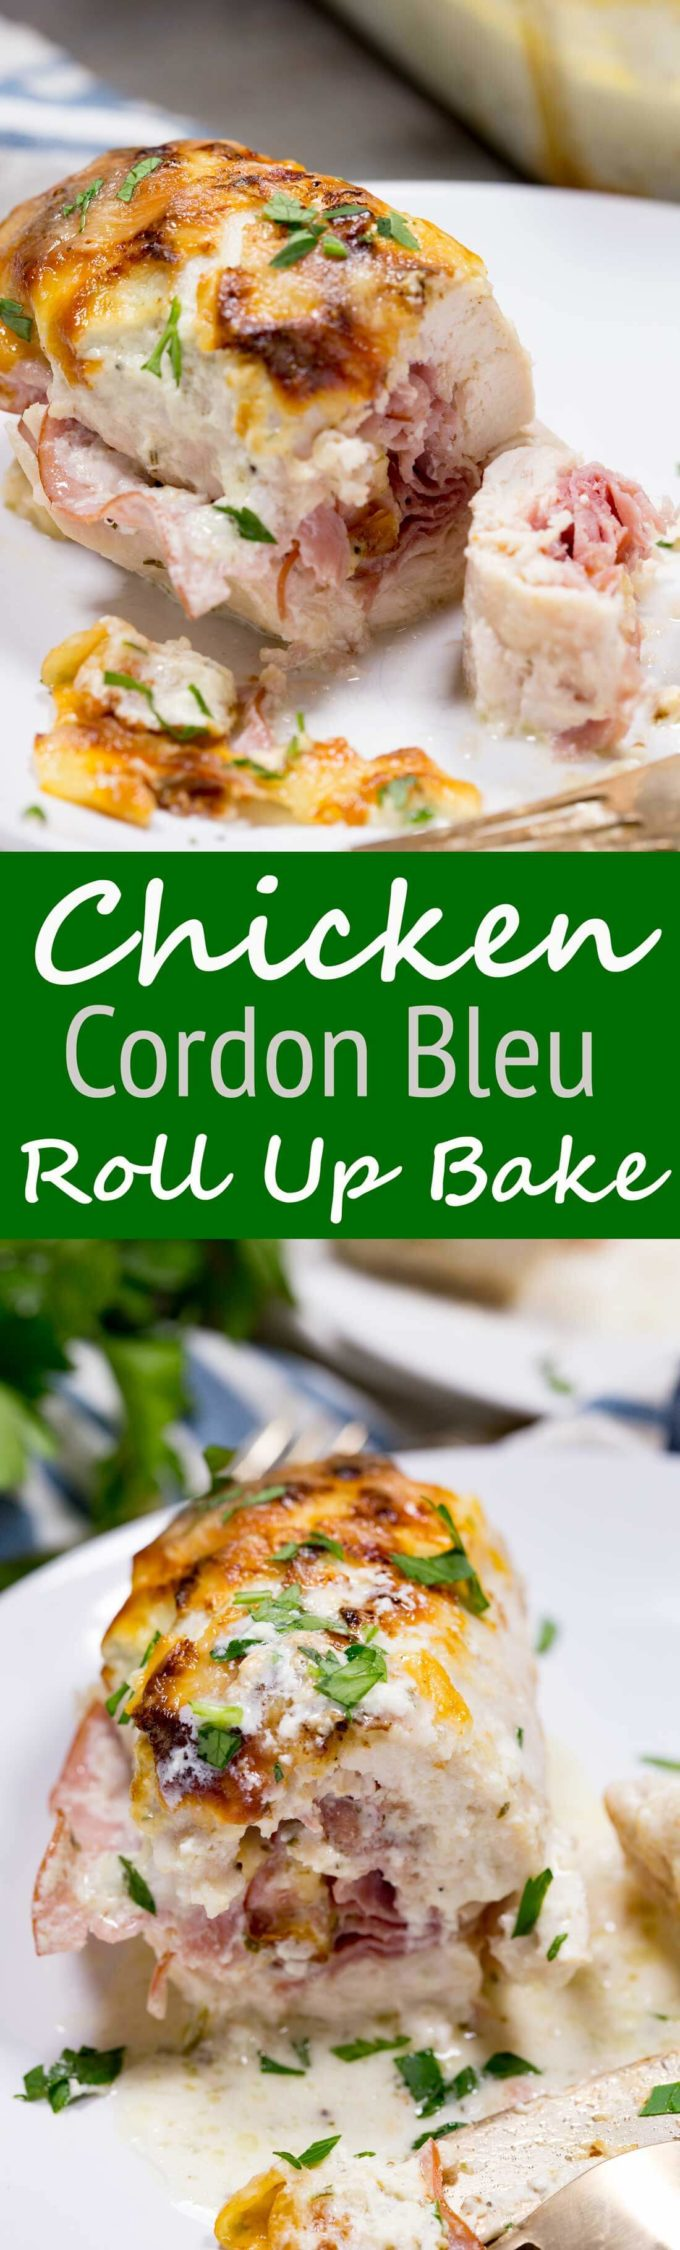 Chicken Cordon Bleu Roll Up Bake is a delicious dinner option